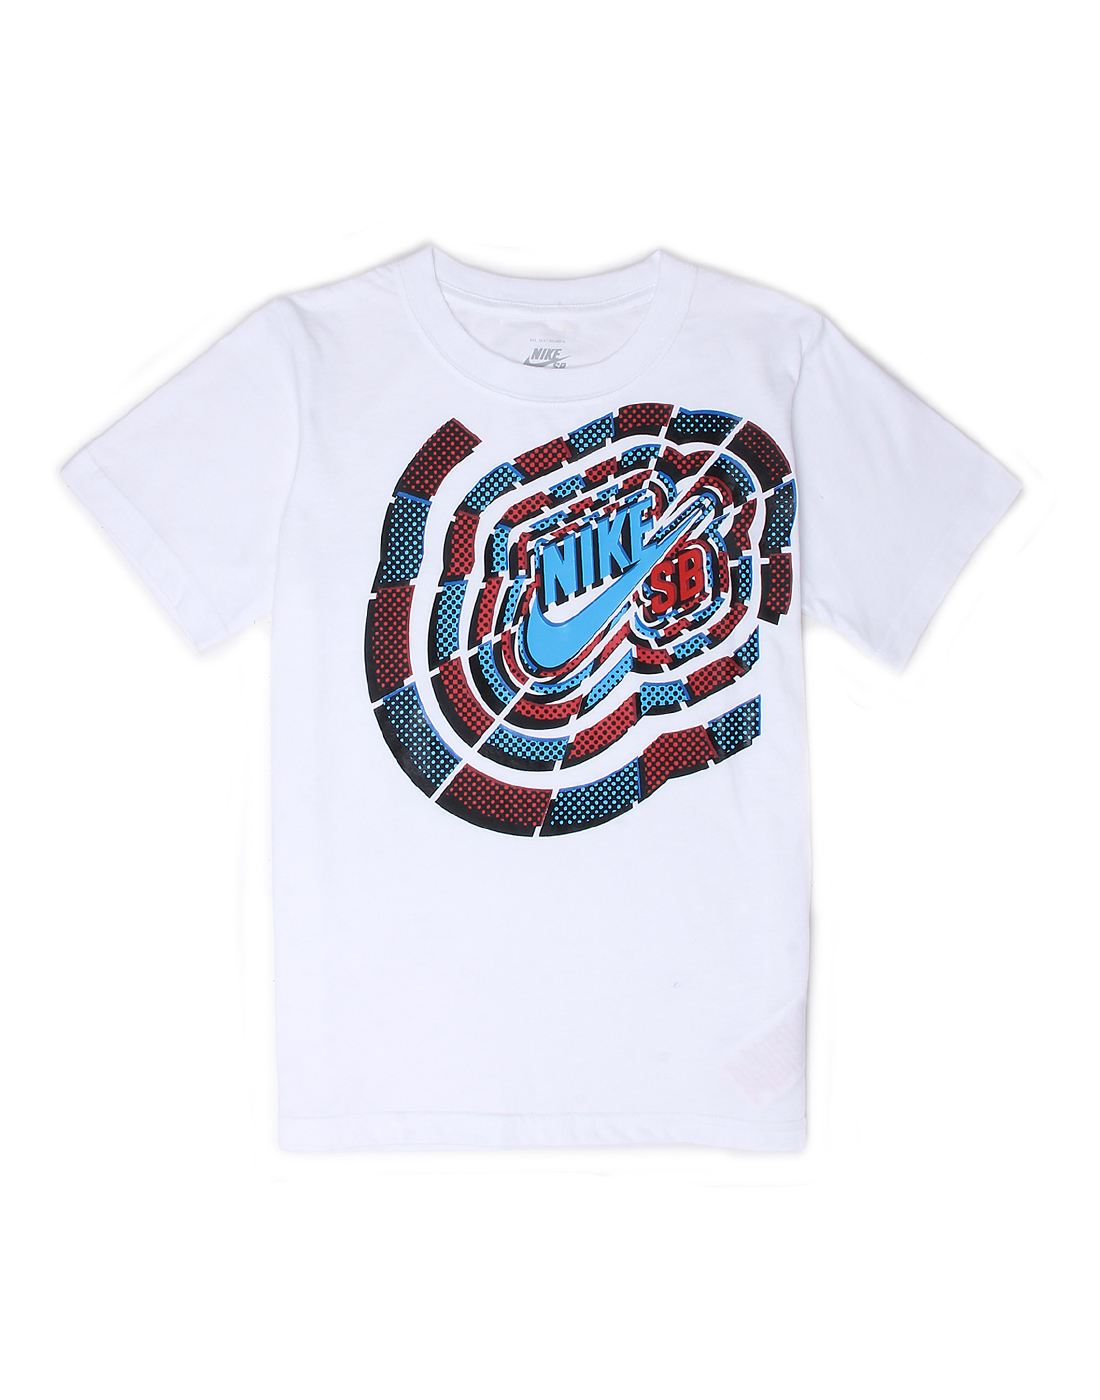 Nike White Cotton Boys T-Shirt